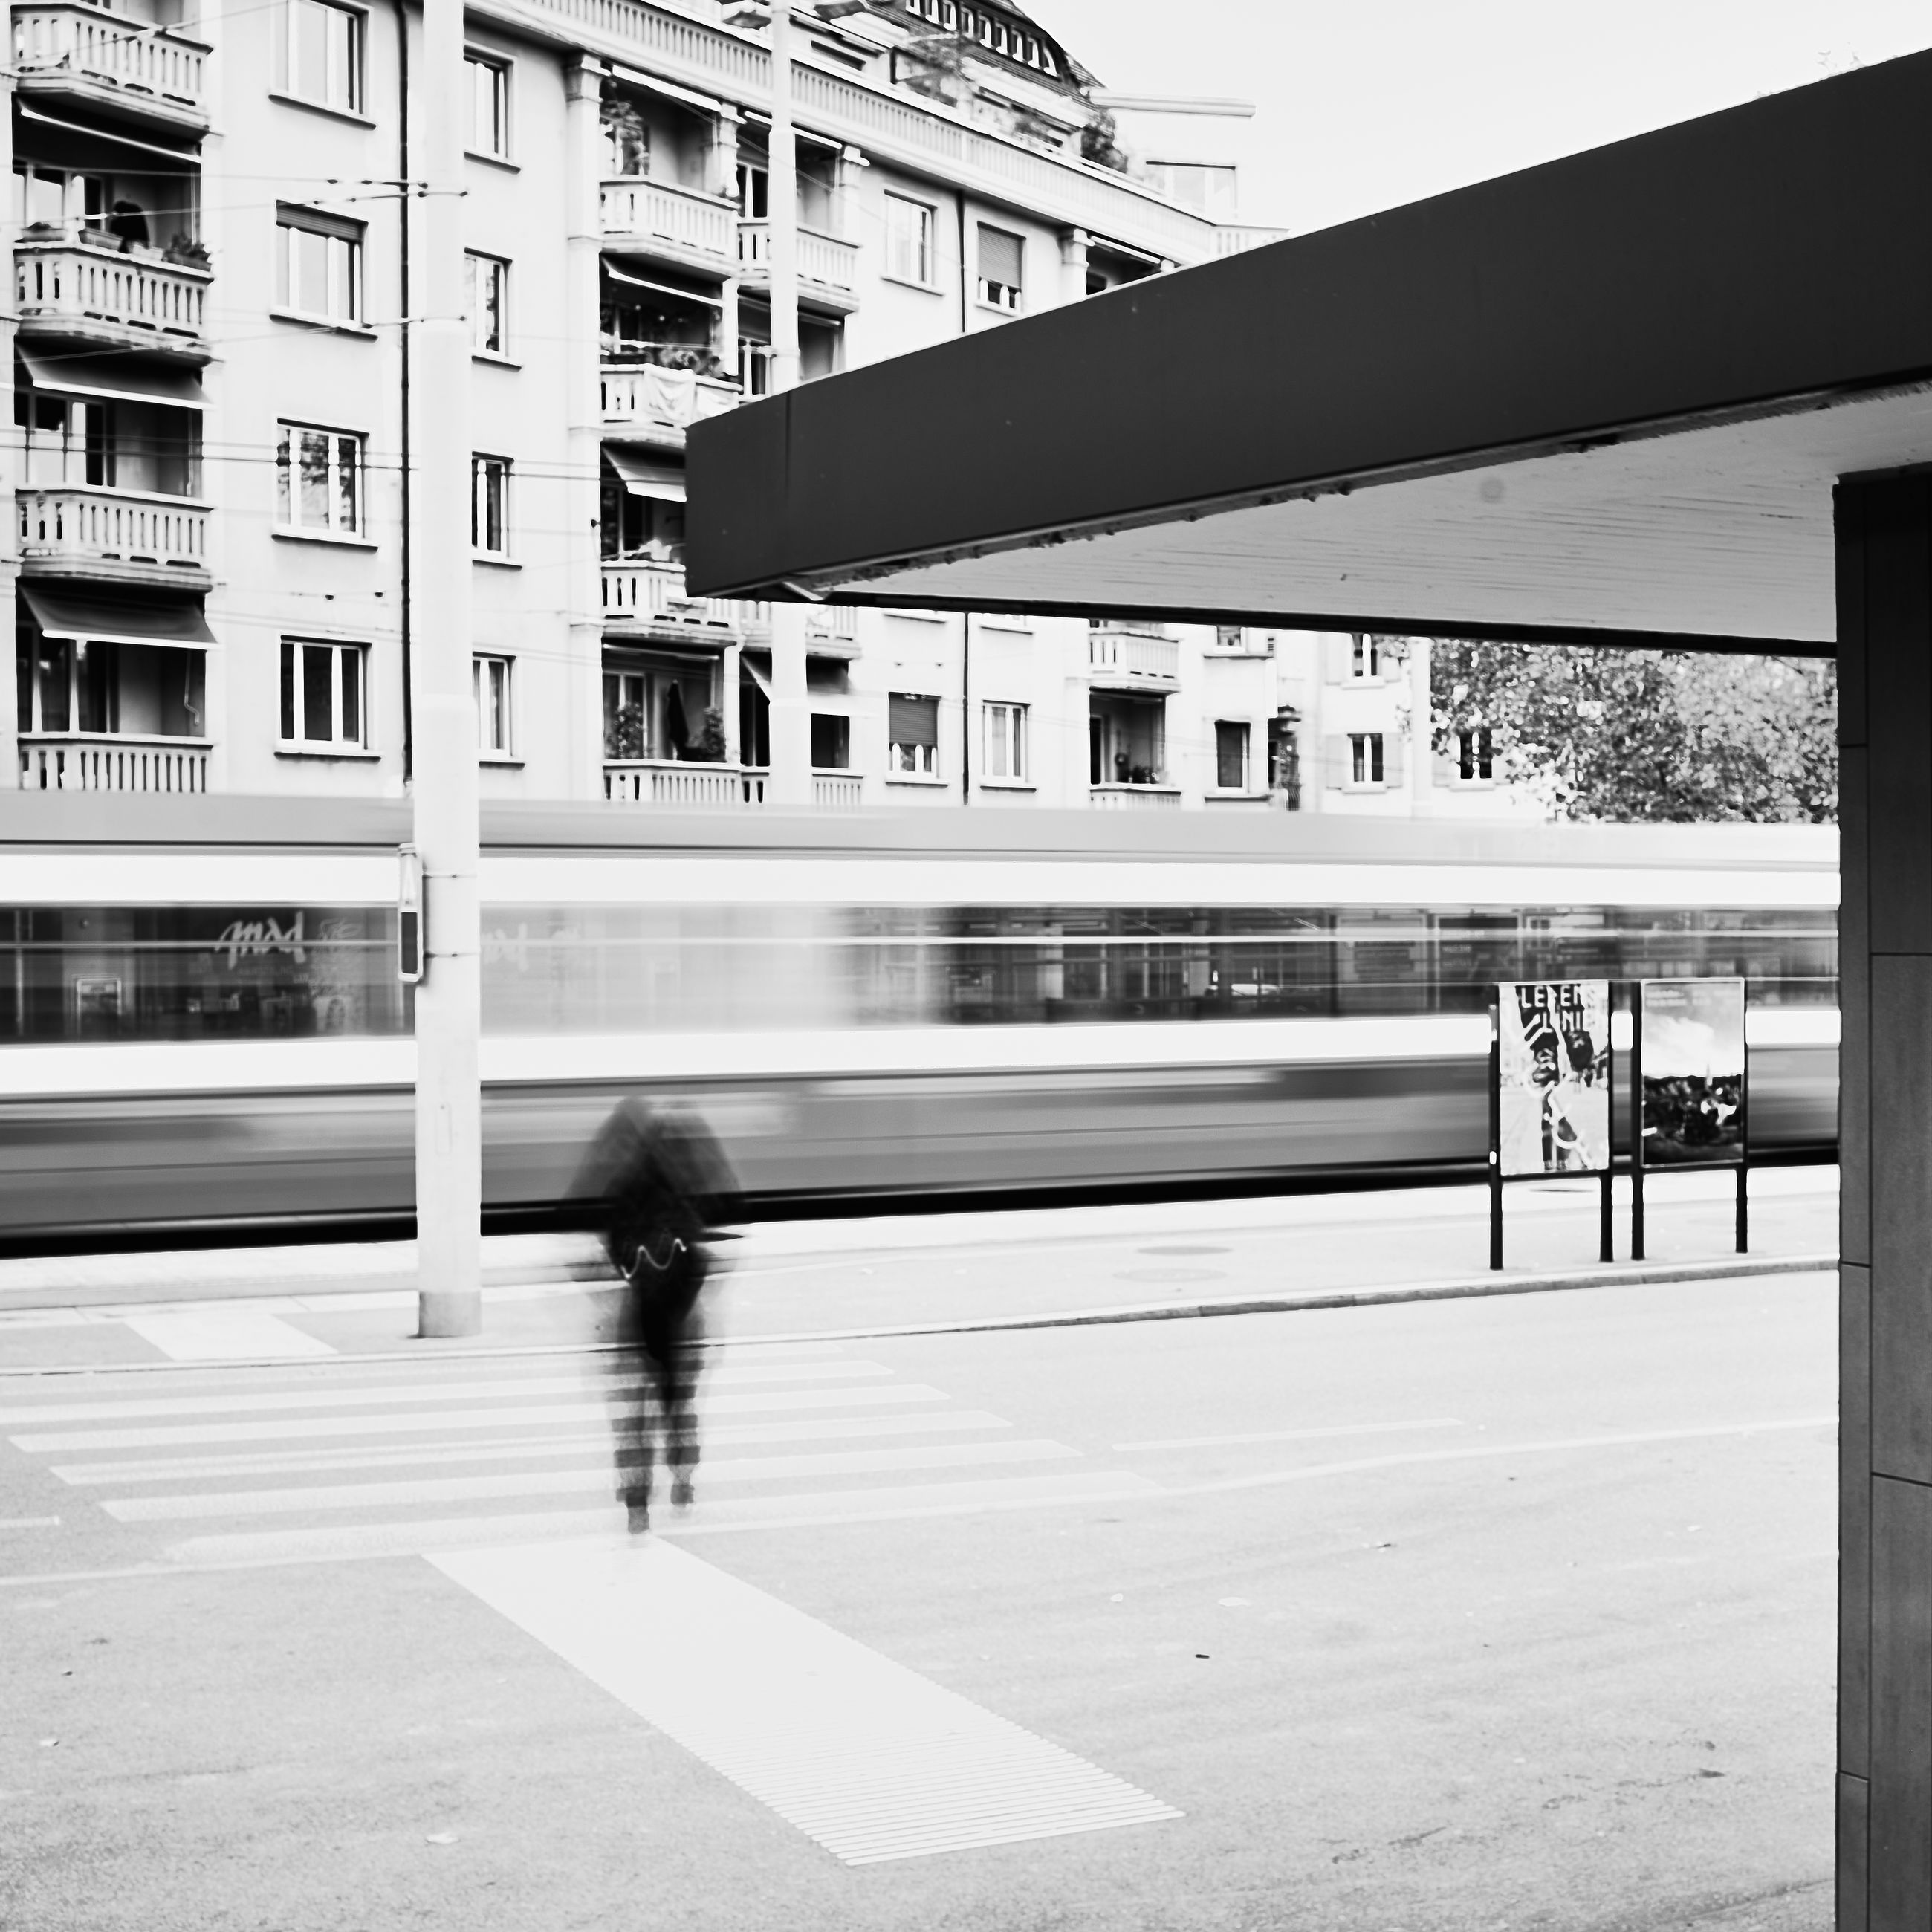 architecture, city, transportation, built structure, white, black and white, building exterior, monochrome, monochrome photography, motion, mode of transportation, city life, black, adult, public transportation, day, rail transportation, walking, street, one person, on the move, travel, women, lifestyles, men, road, blurred motion, outdoors, building, railroad station, urban area, railroad station platform, nature